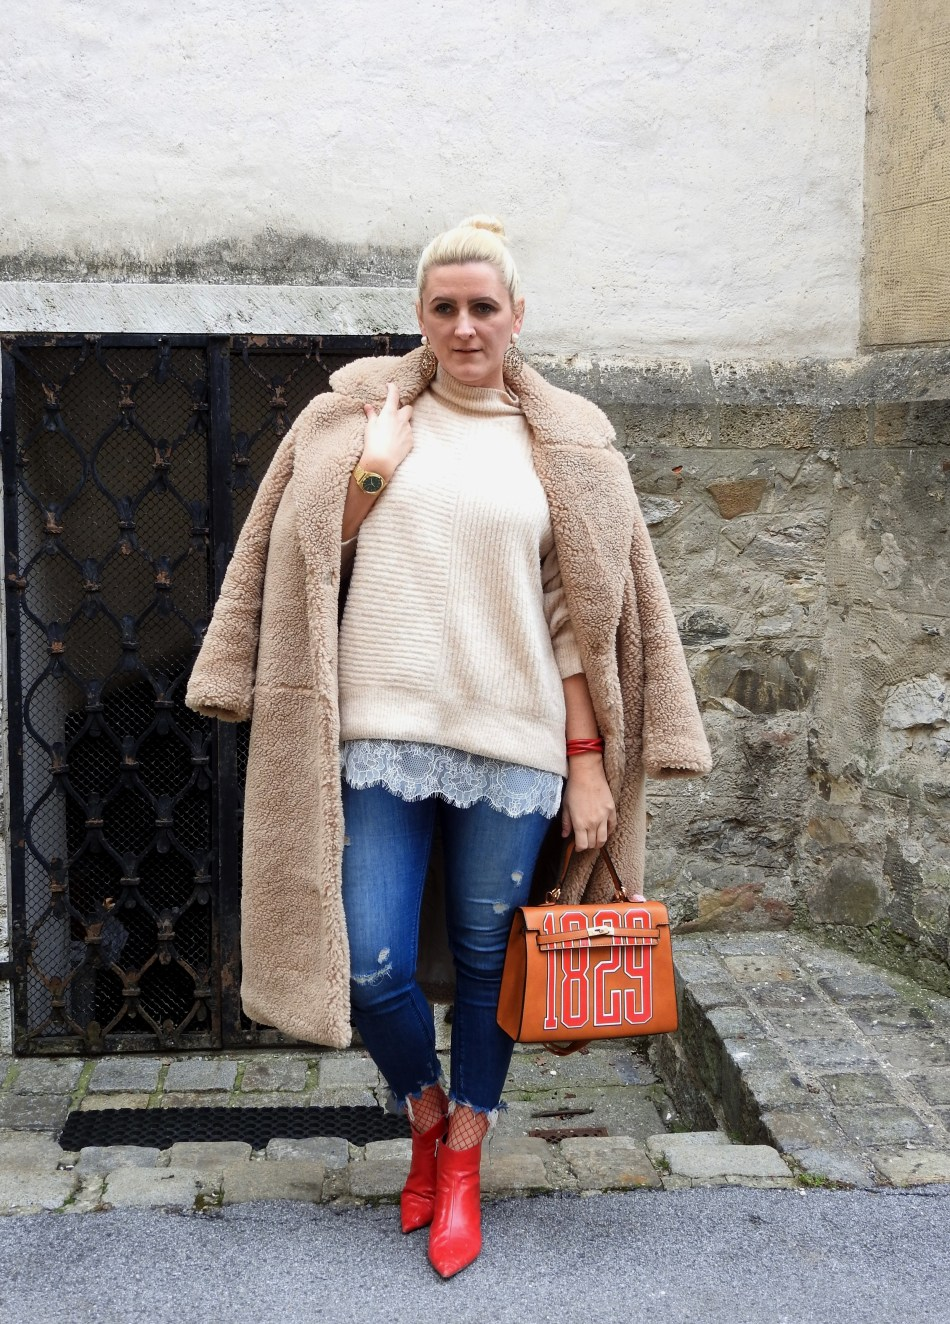 Teddycoat-H&M-Red-Boots-Fishnet-Stockings-Denim-Romwe-Bag-Beige-carrieslifestyle-Tamara-Prutsch